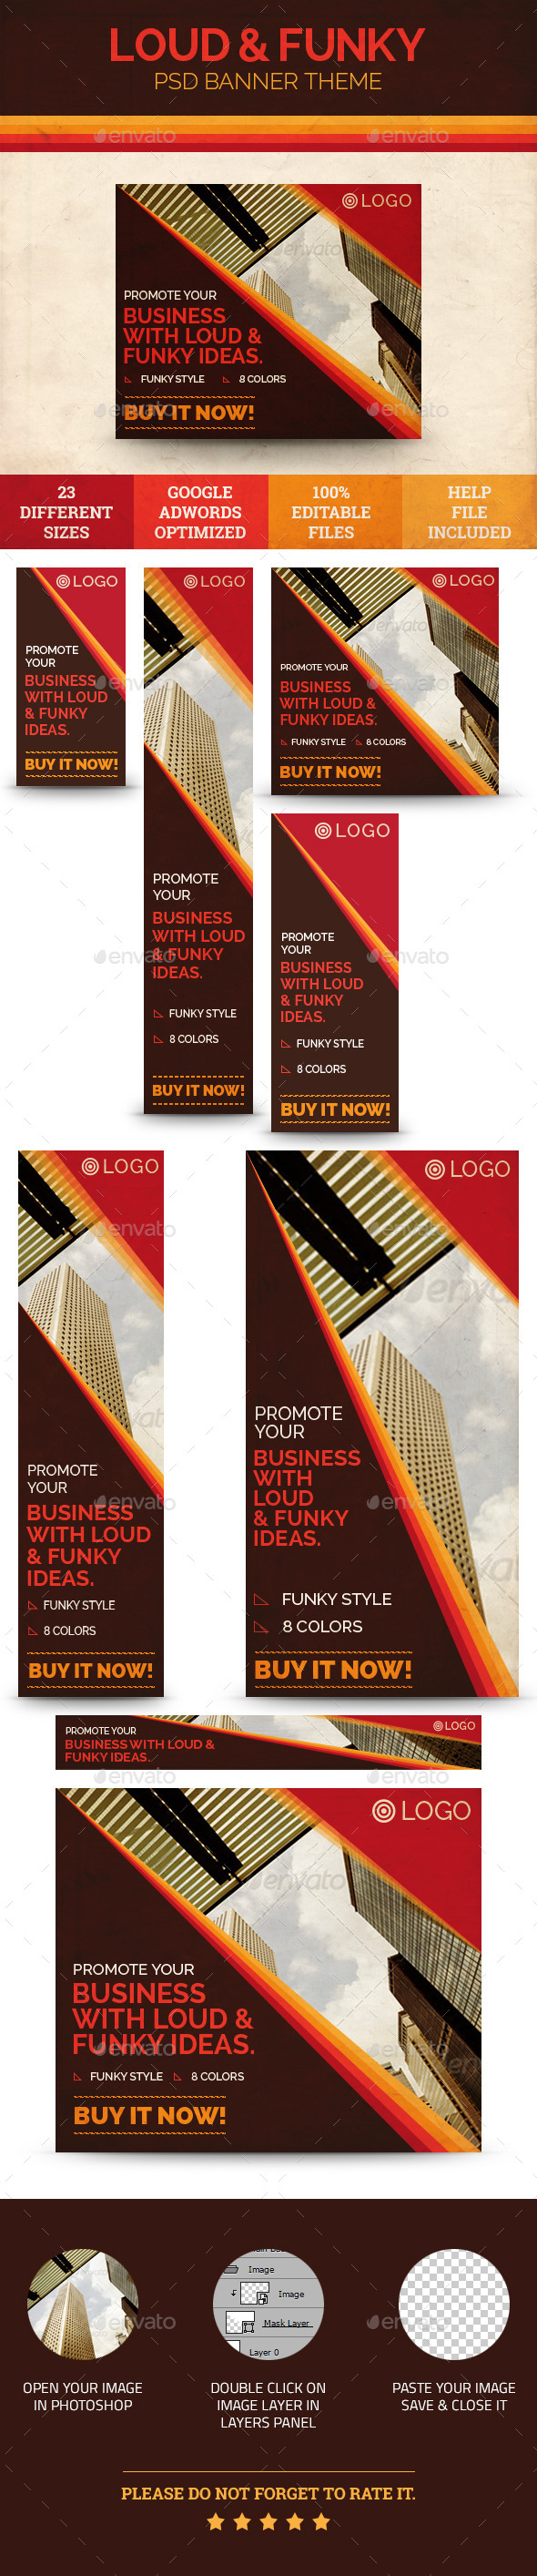 Loud / Funky Advertising - Banners & Ads Web Elements